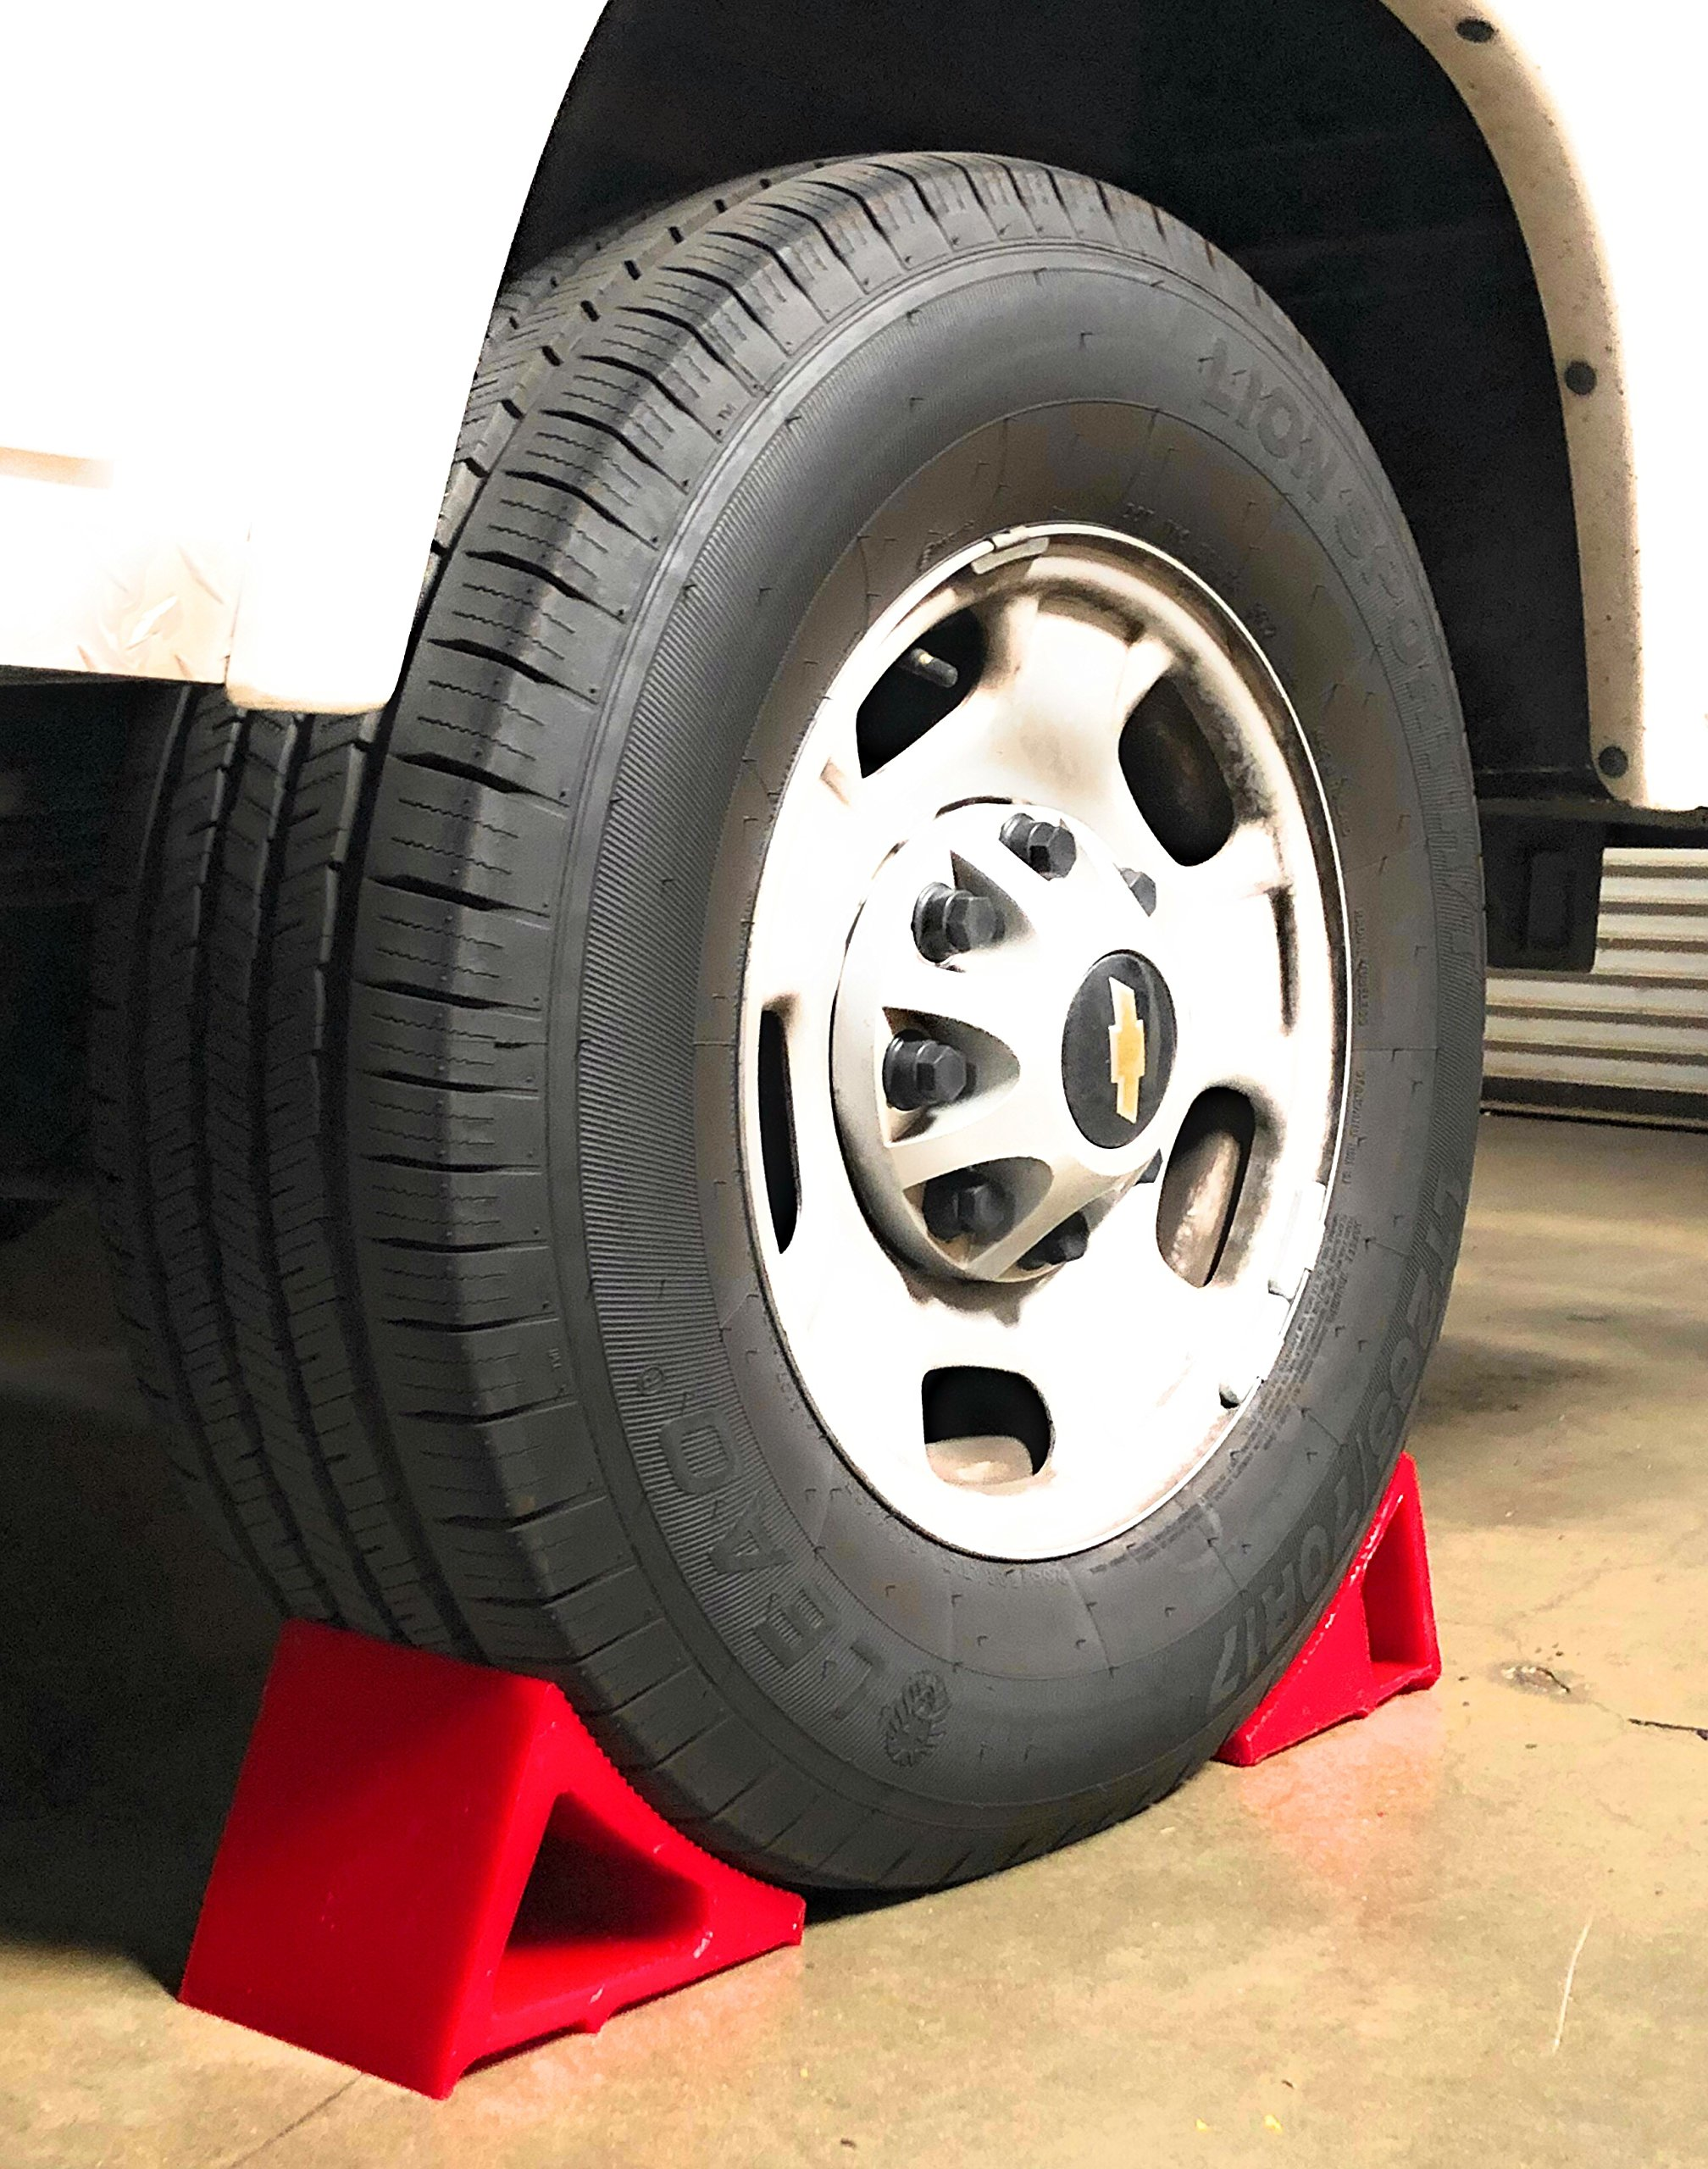 Tire & Wheel Chock - Ideal Camping Accessory for RV Motorhome, Trailer, Truck, Motorcycle & Car. Weatherproof, Outdoor Grade, Polyurethane Better Than Rubber or Plastic, 5 Year Warranty, 2 Pack Red by Elasco Products (Image #6)